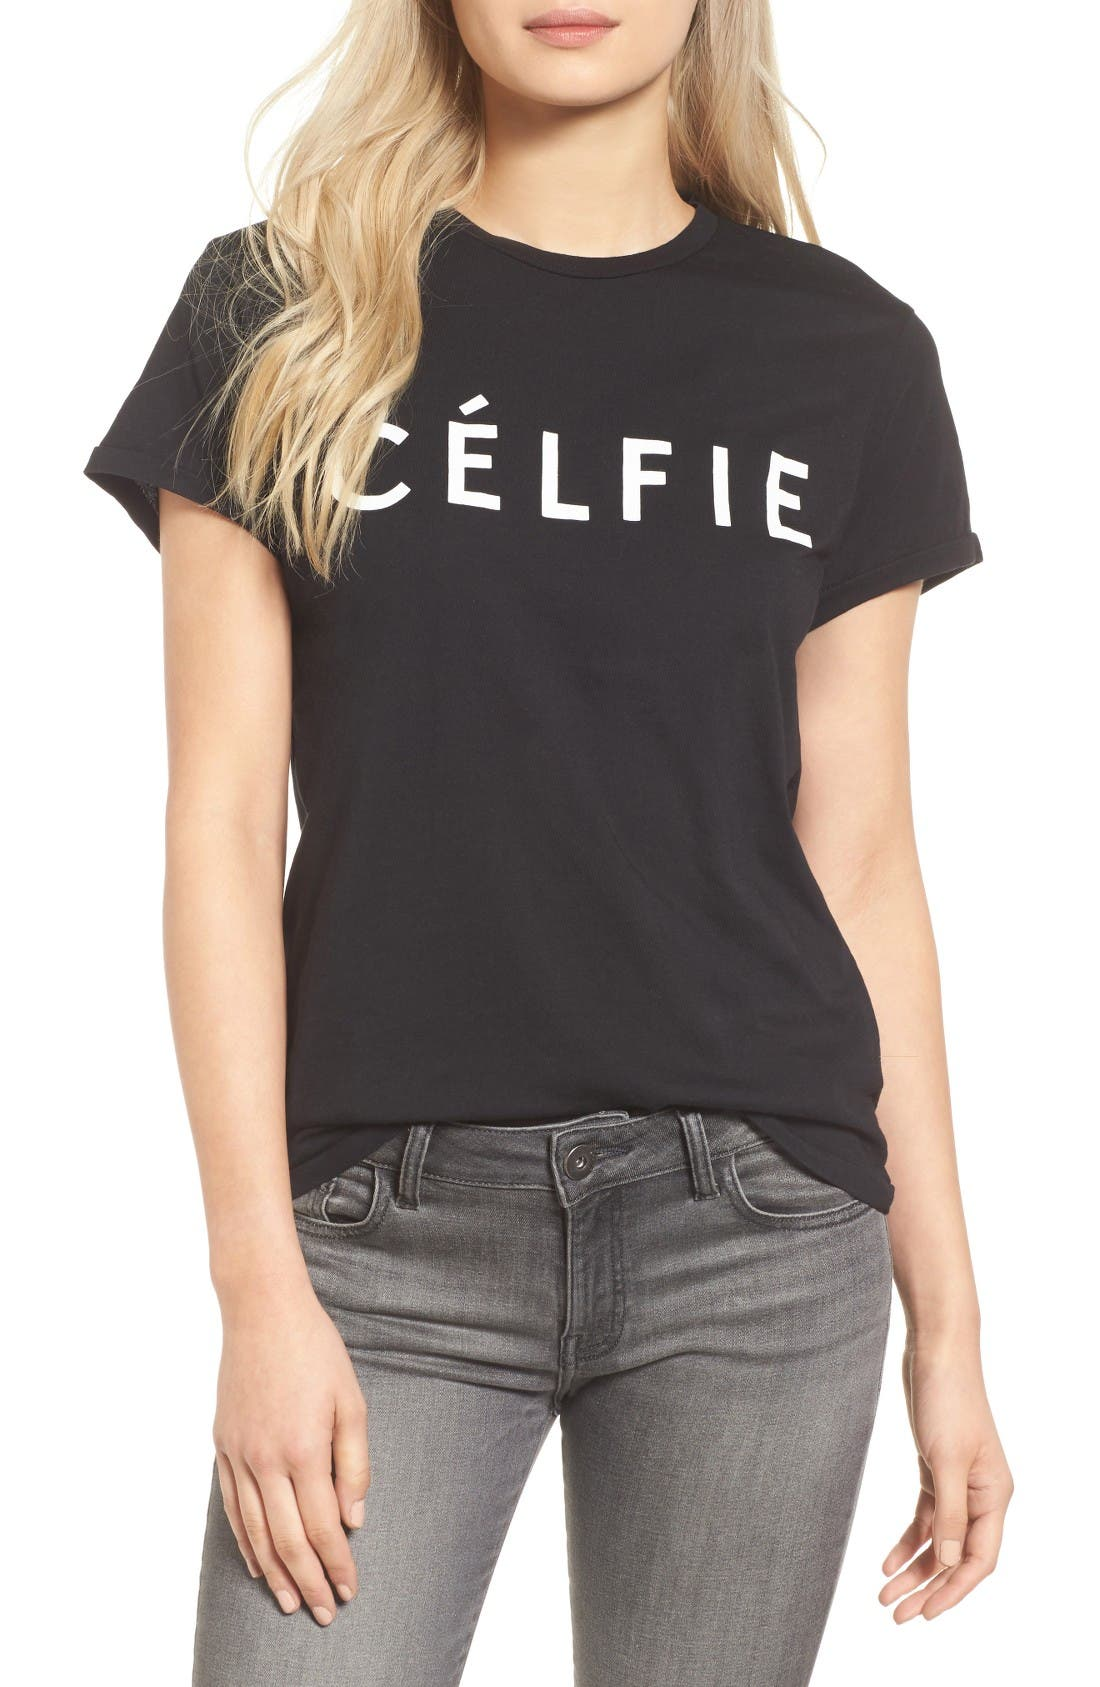 Main Image - Sincerely Jules 'Célfie' Graphic Tee